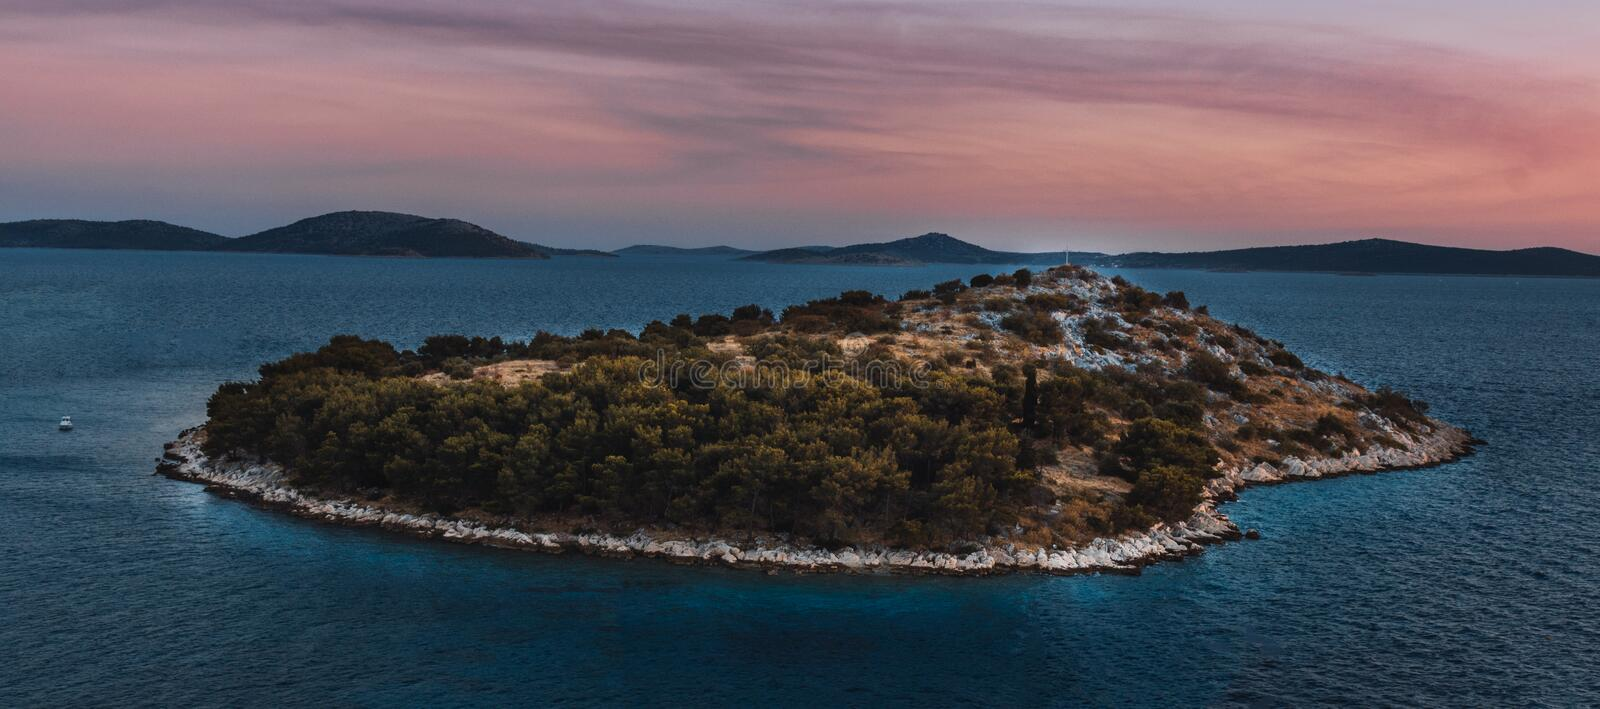 Island Covered in Trees Surrounded by Body of Water royalty free stock photos